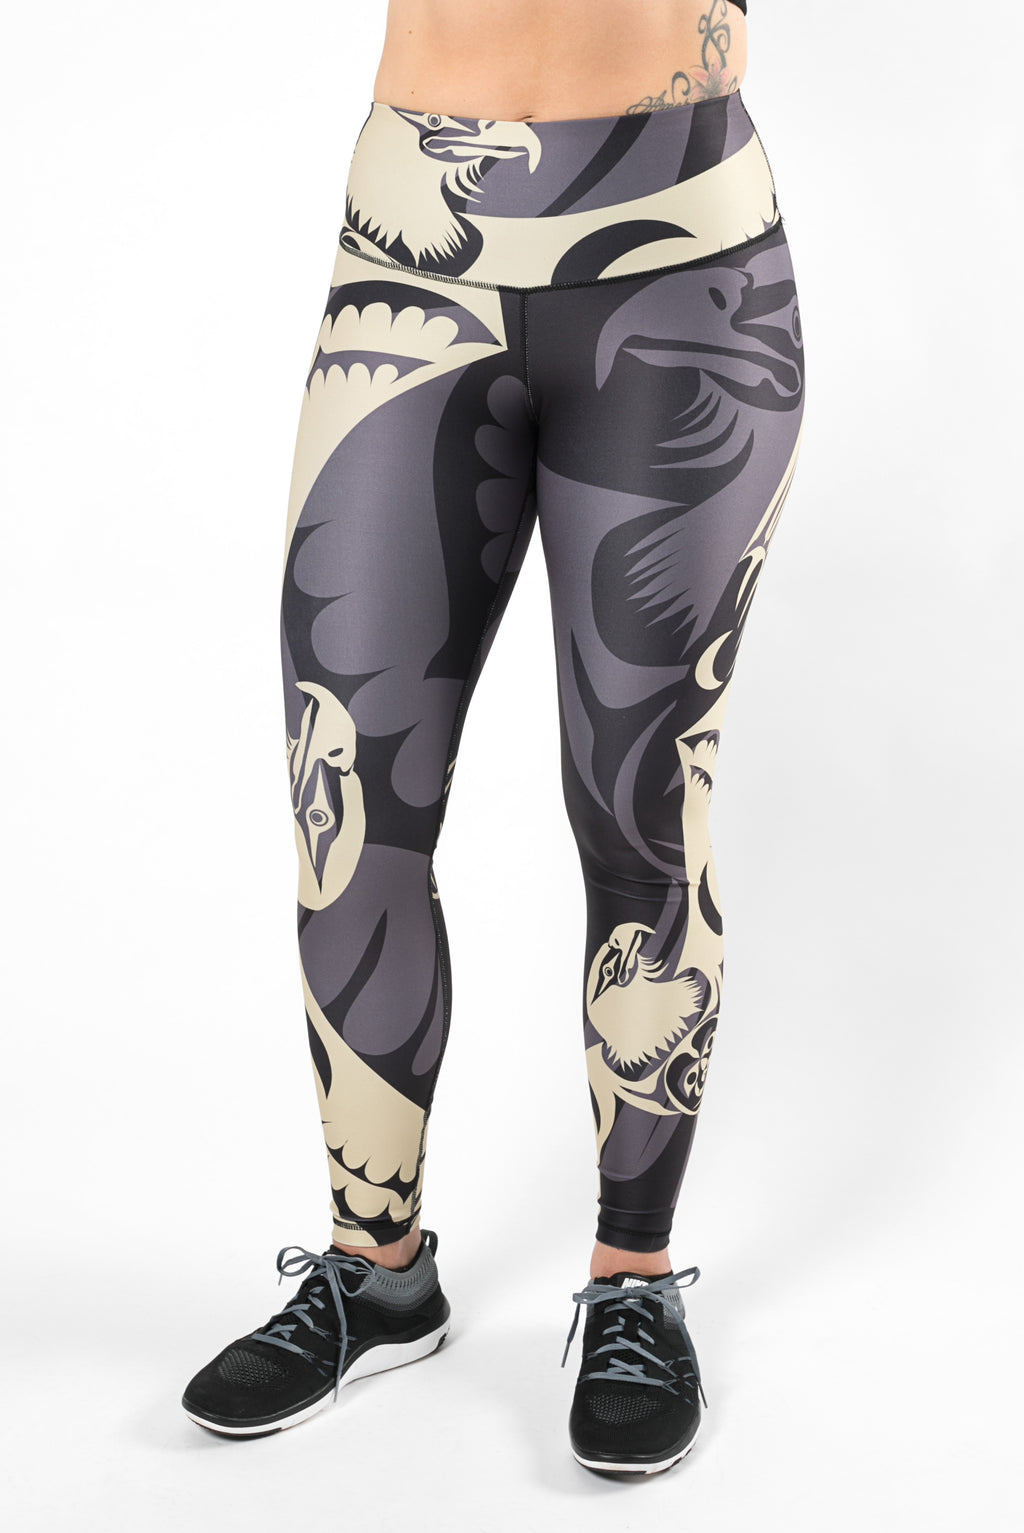 Nominou Sweat Society Eagle Gold Legging Canada USA